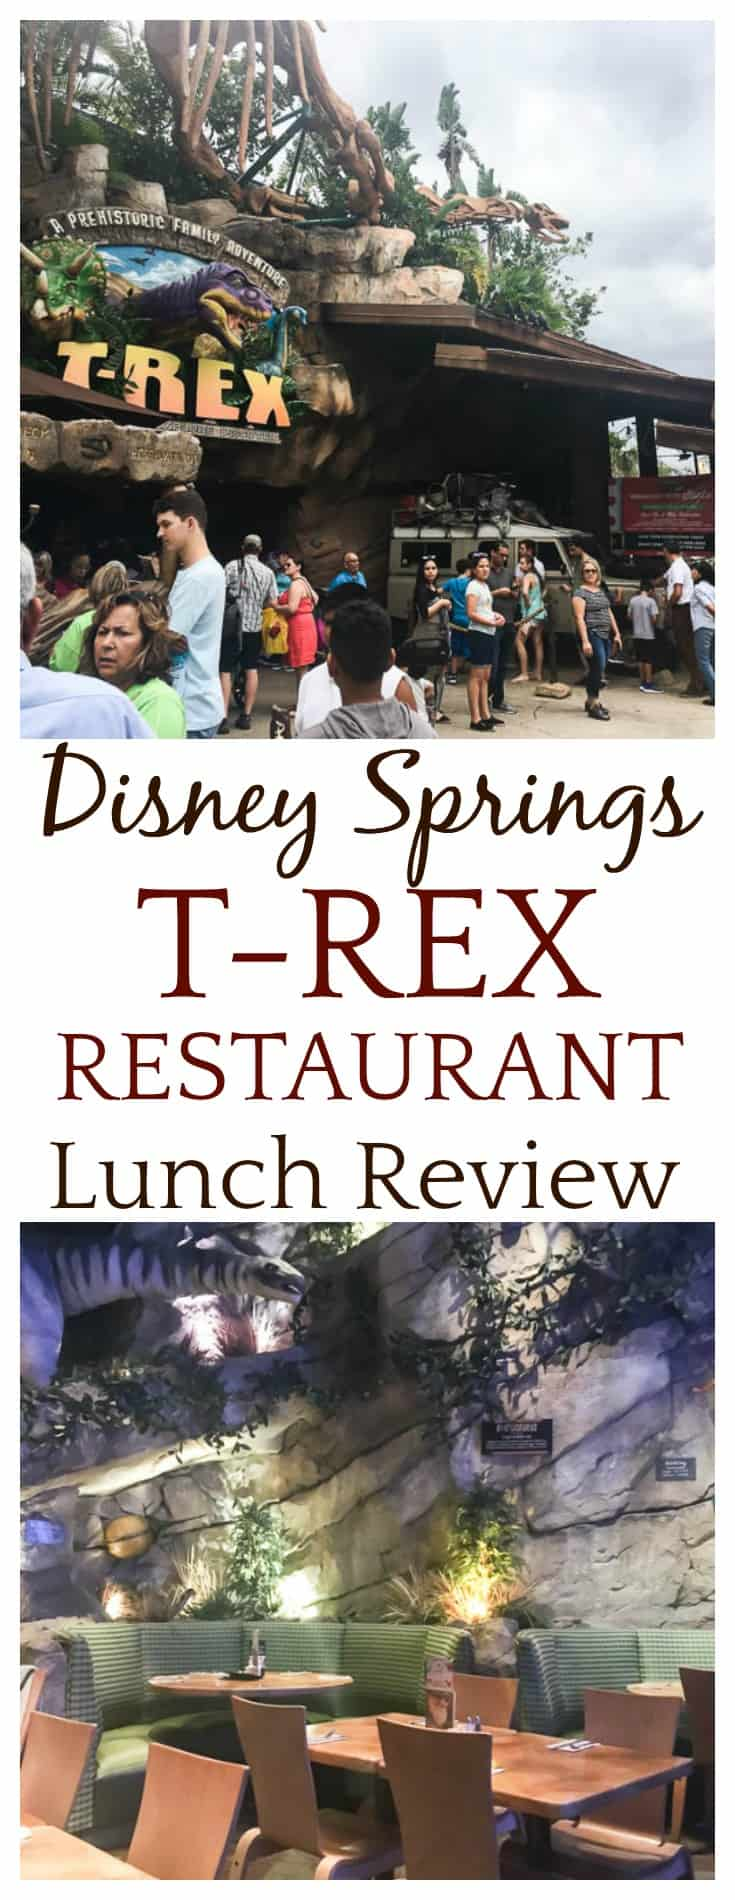 This Disney Springs T-REX Restaurant lunch review is based on my experience when visiting the restaurant in November 2017 with my family. | #disneydining #disneysprings #TREXrestaurant #disneyworld #restaurants #dlb